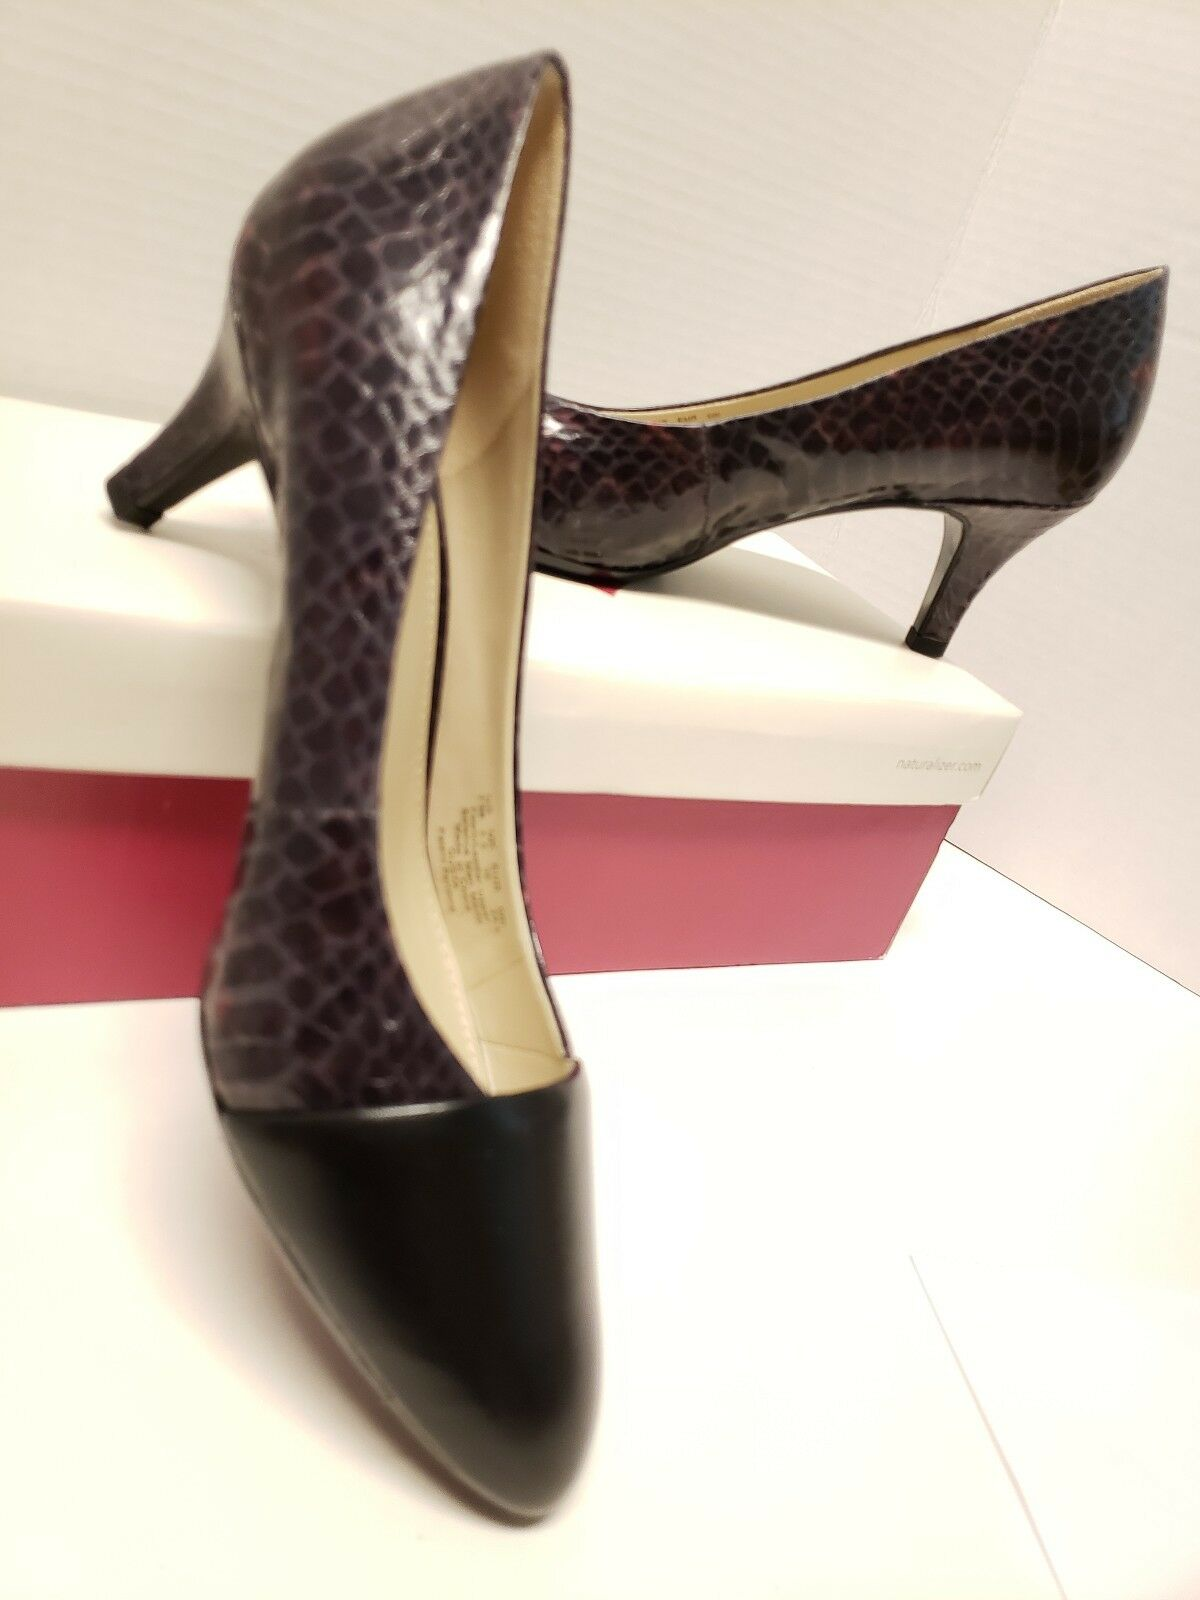 Naturalizer Gusta Snake Print Leather Leather Leather Heels Womens shoes 7.5 M Wine Black NEW 597261